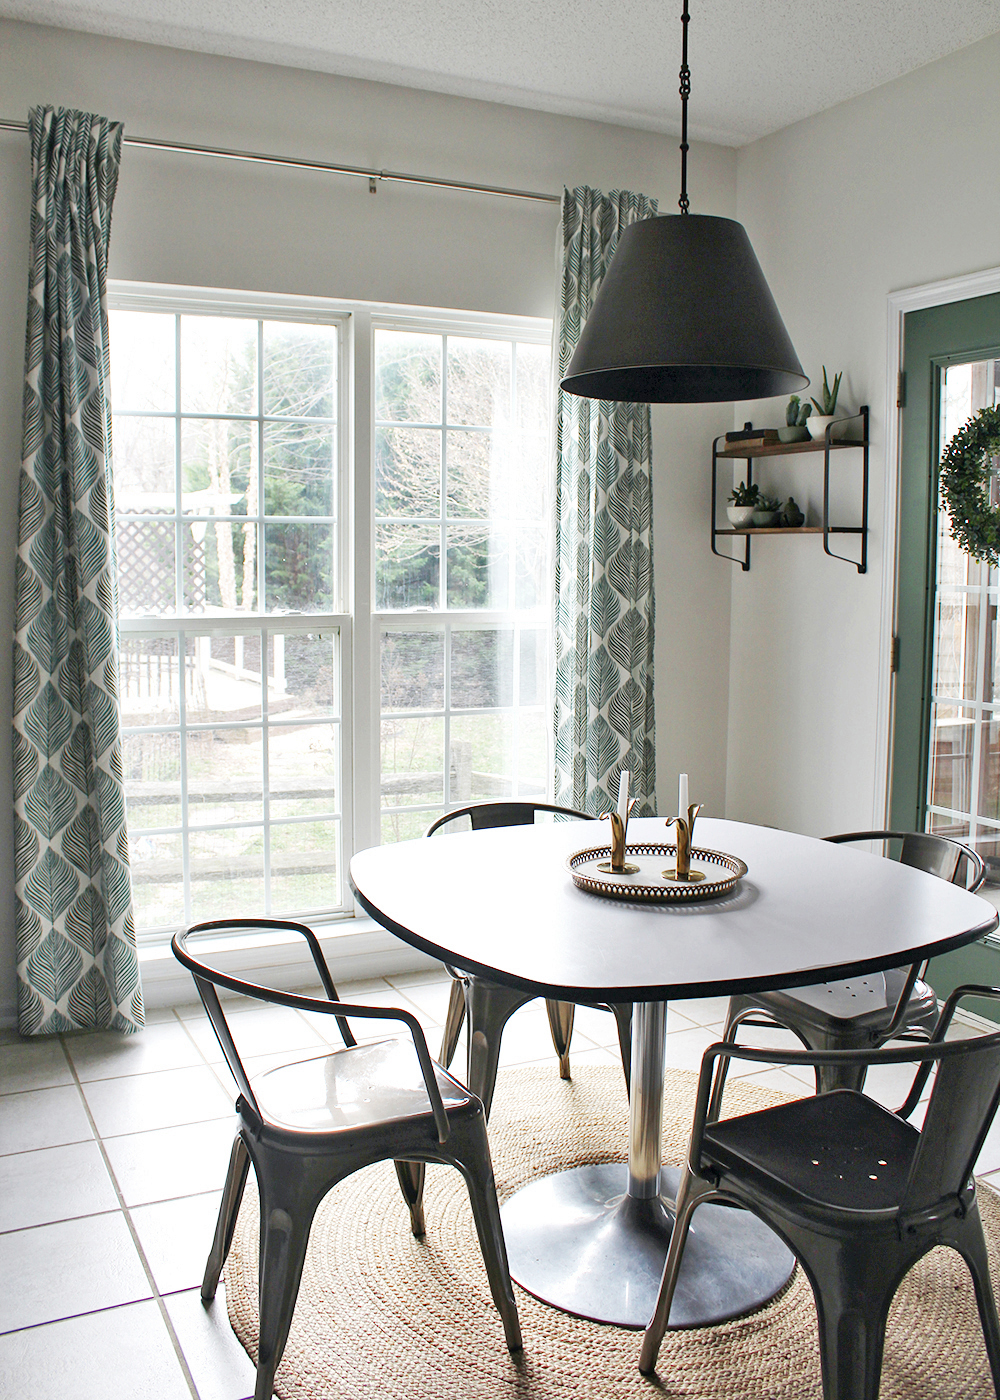 Before & After breakfast nook on a small budget | white walls with green french door